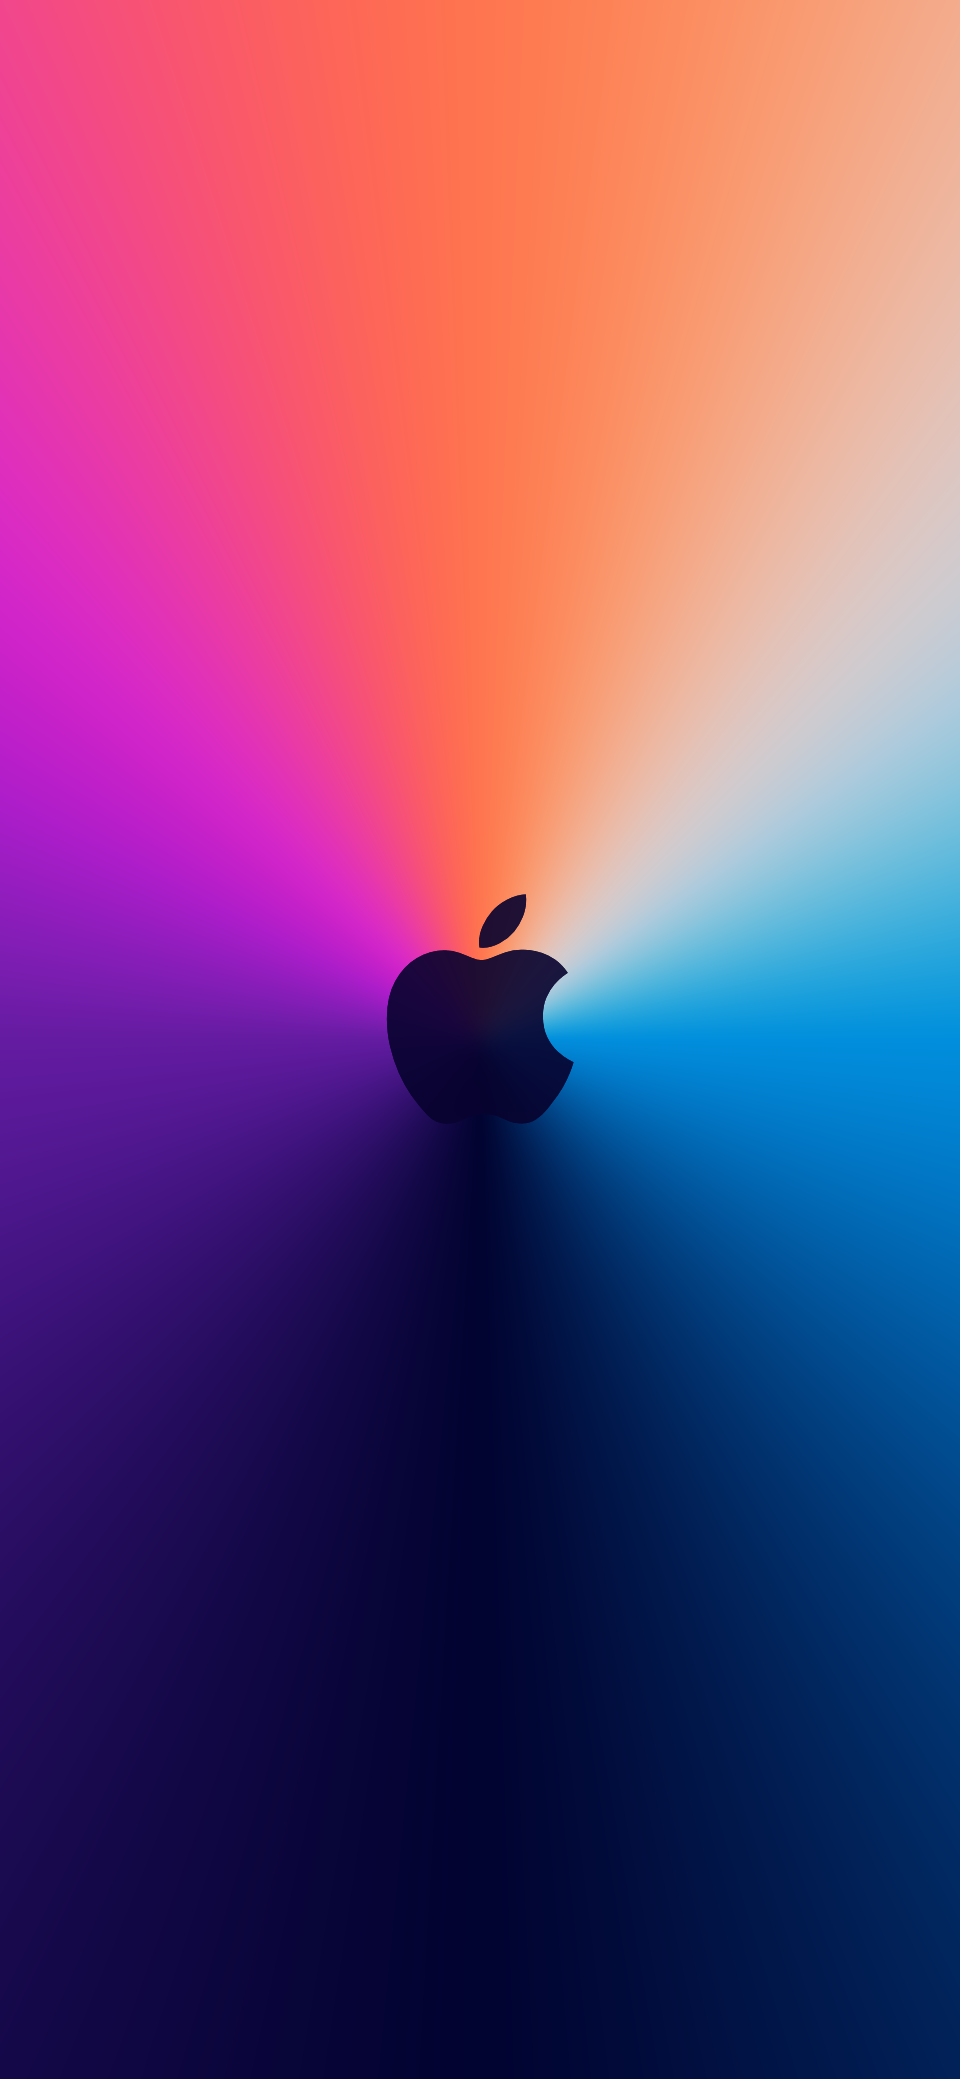 Apple One More Thing Event wallpaper idownloadblog surenix iPhone logo